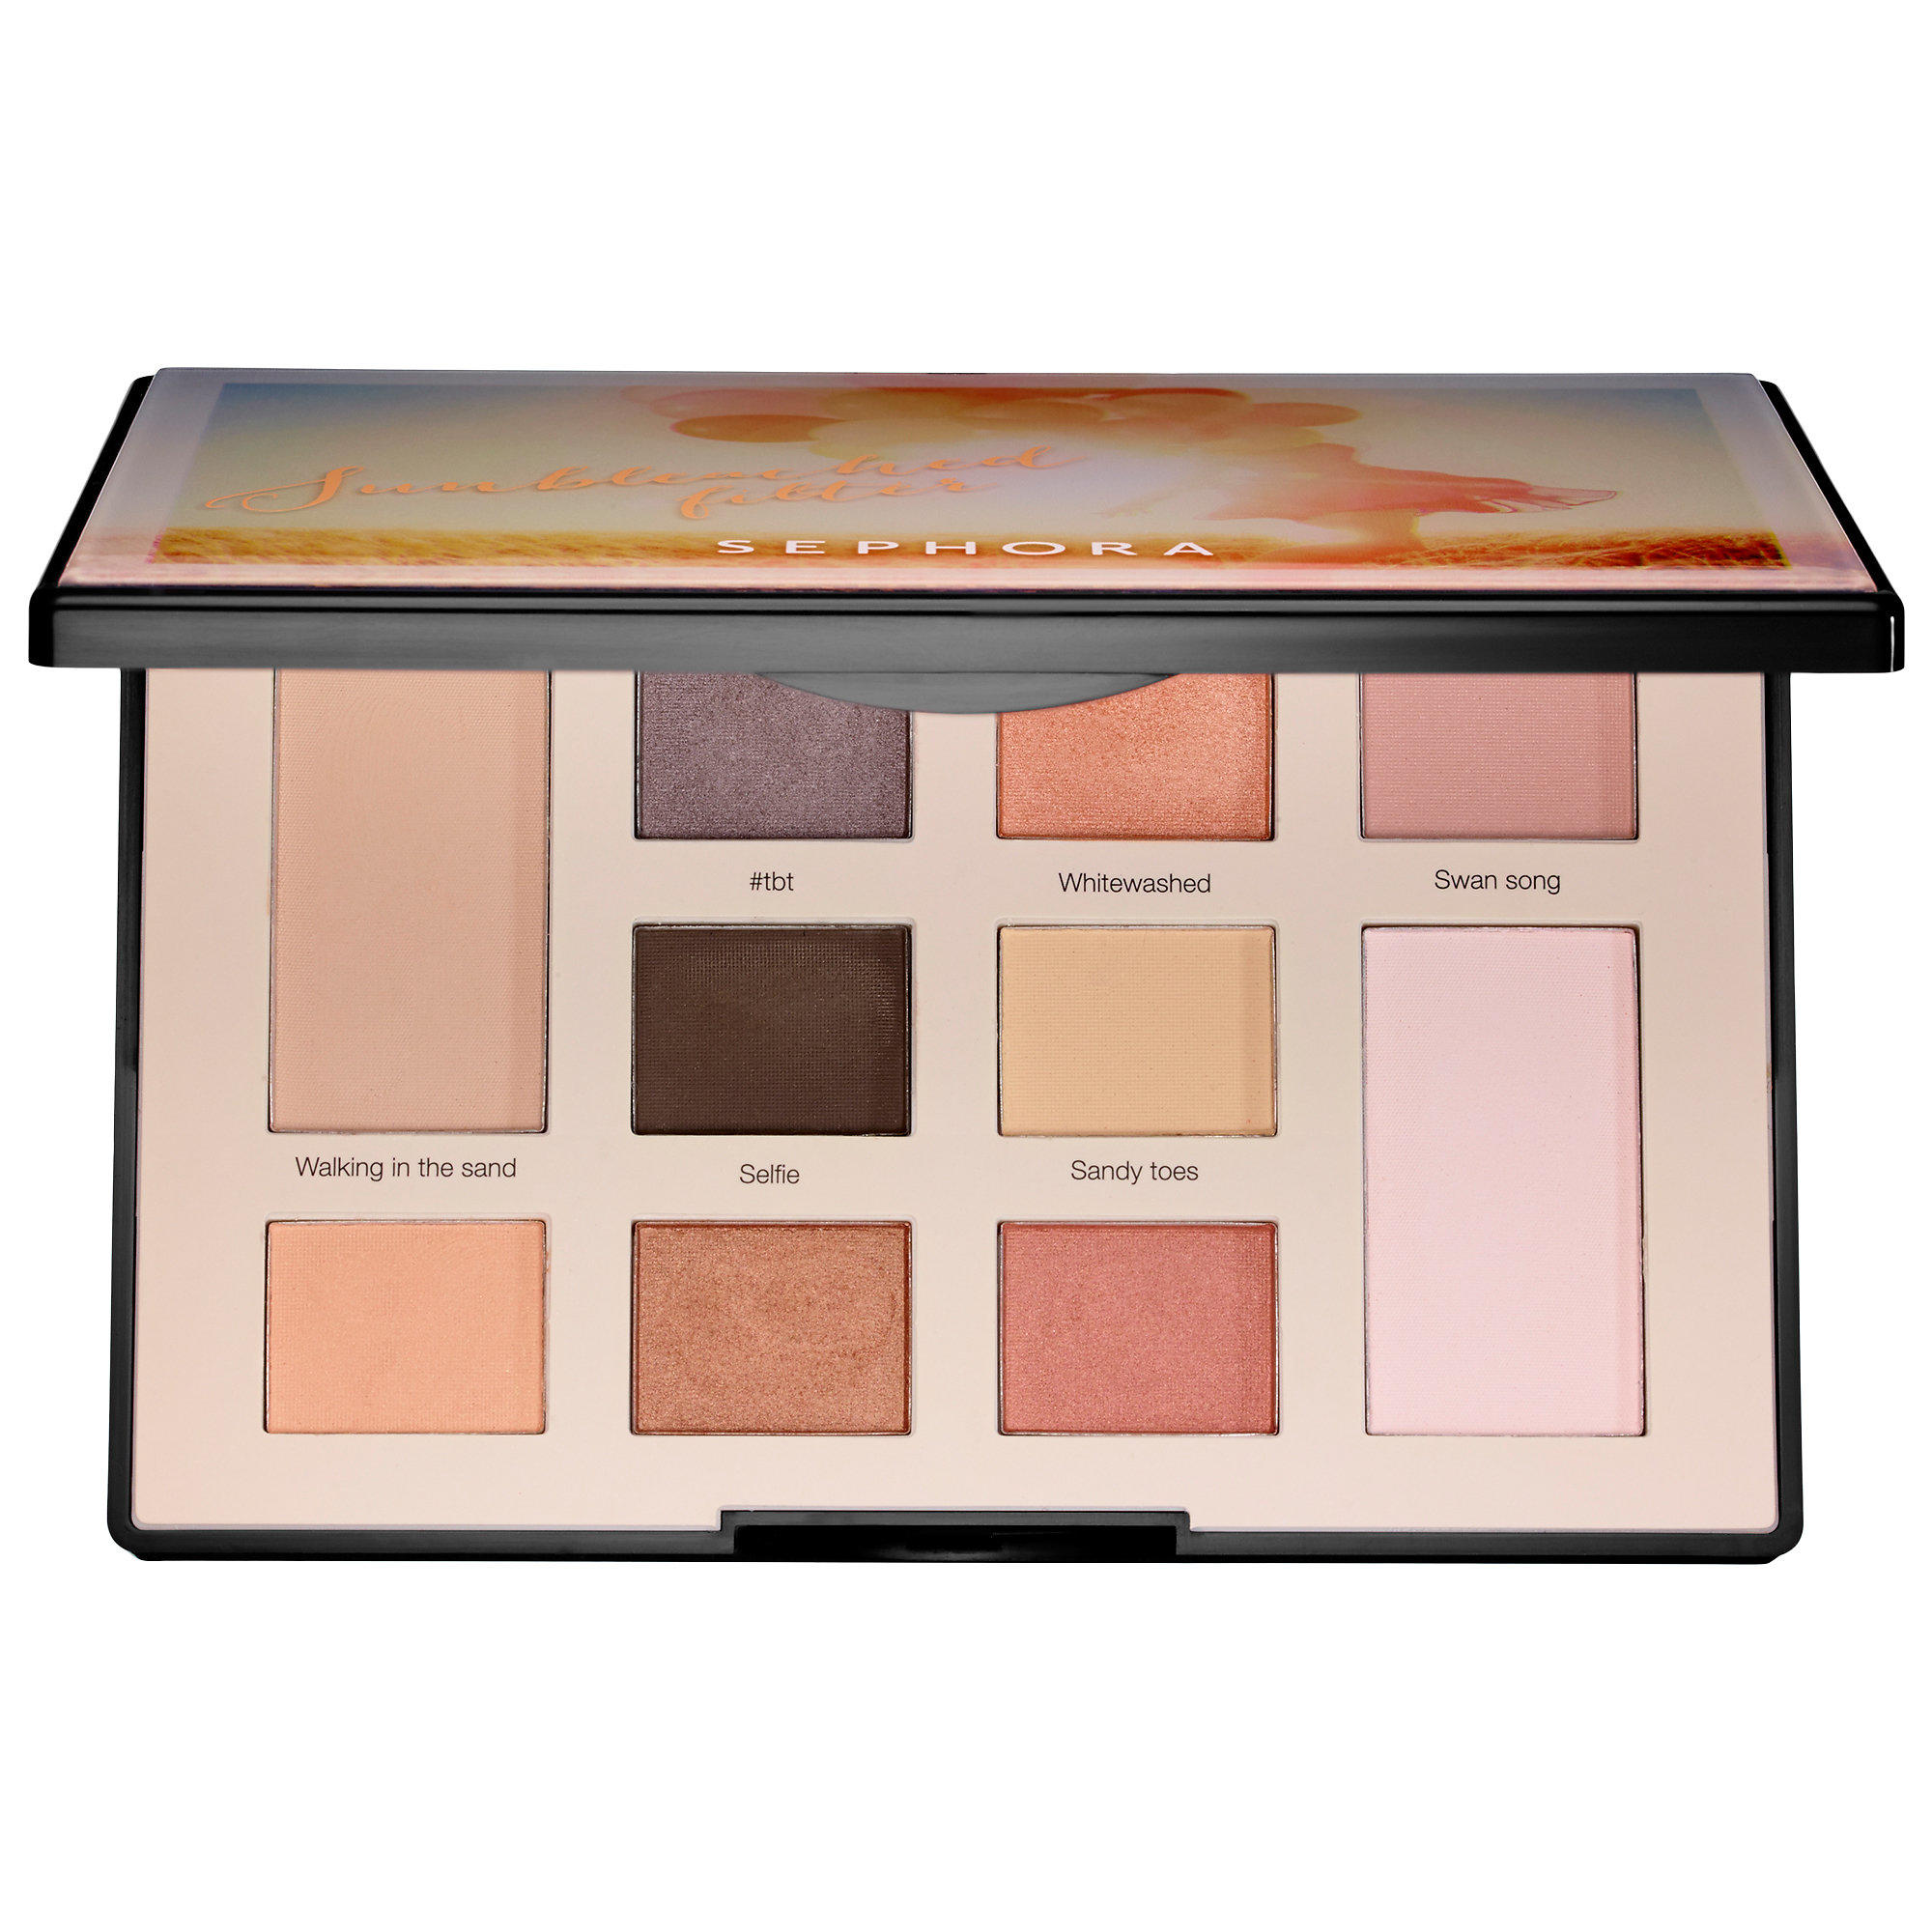 Sephora Colorful Eyeshadow Filter Palette Sunbleached Filter